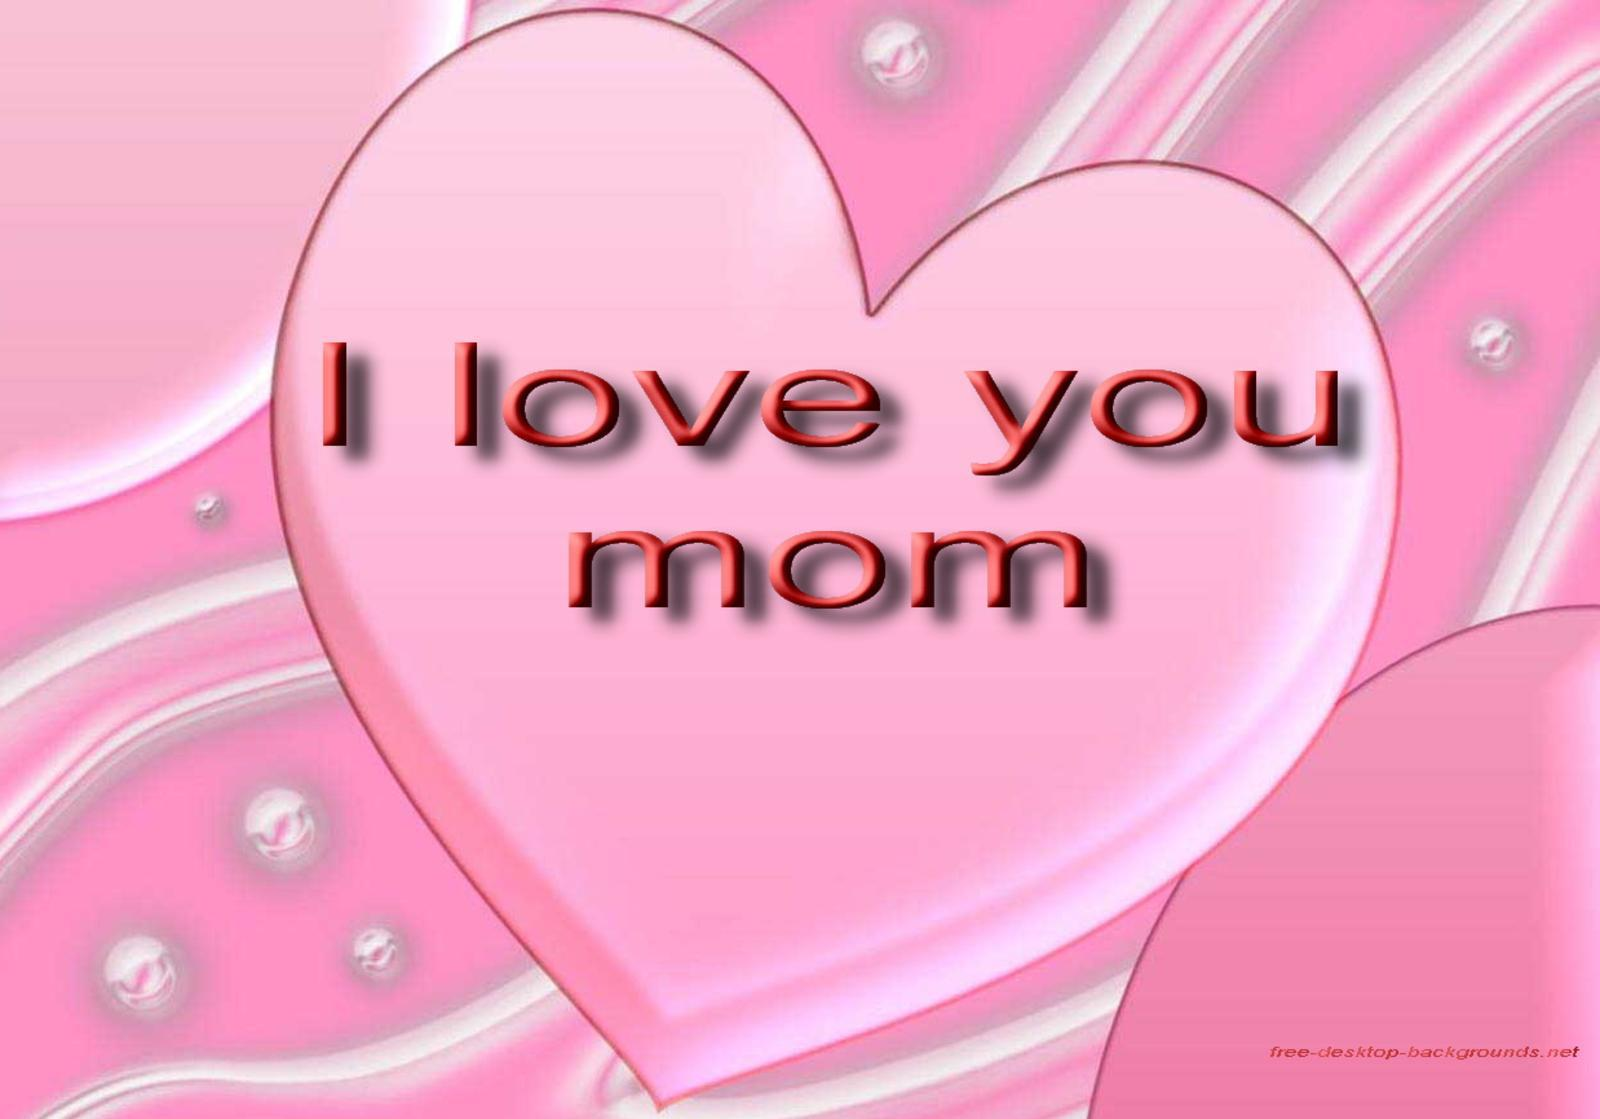 I Love You Mom Desktop Wallpapers Desktop Background 1600x1119